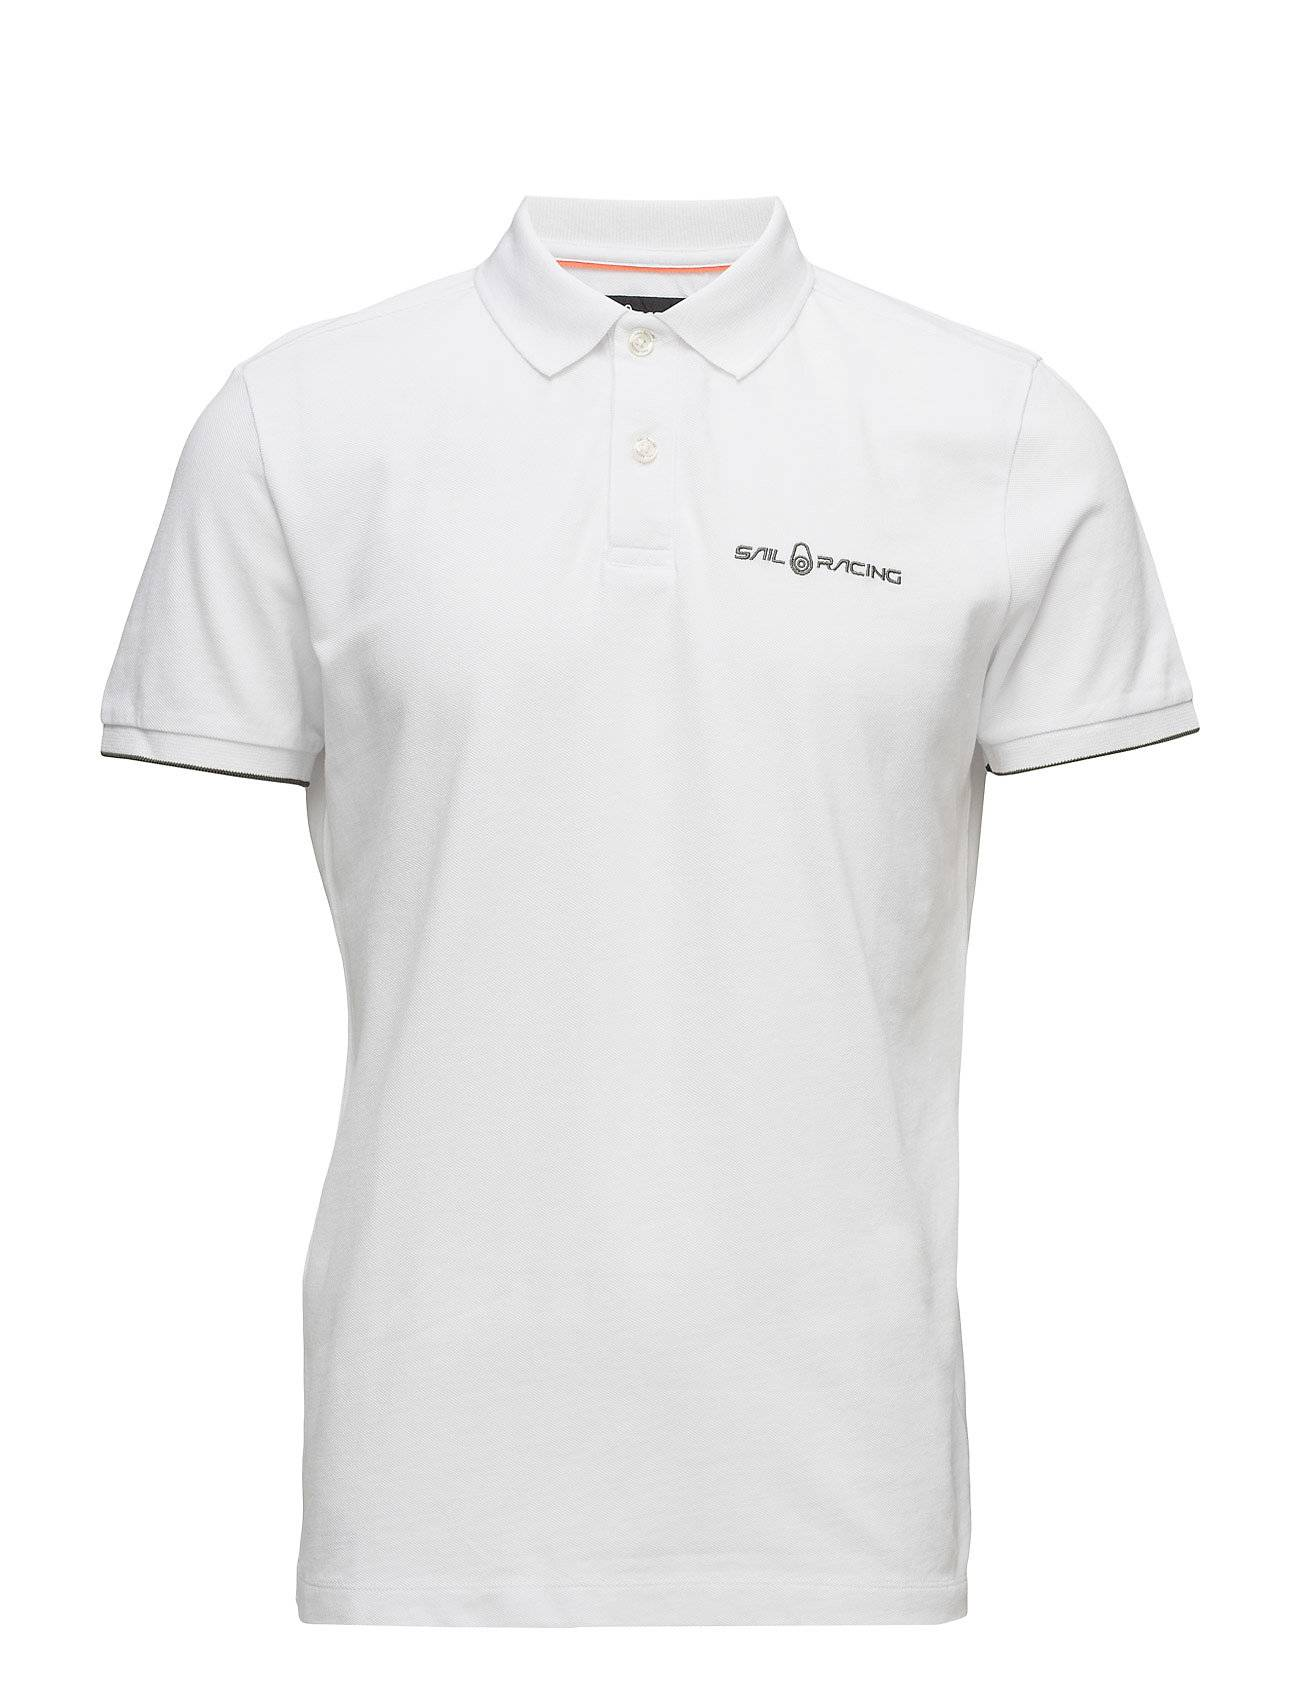 Sail Racing Bowman Logo Polo